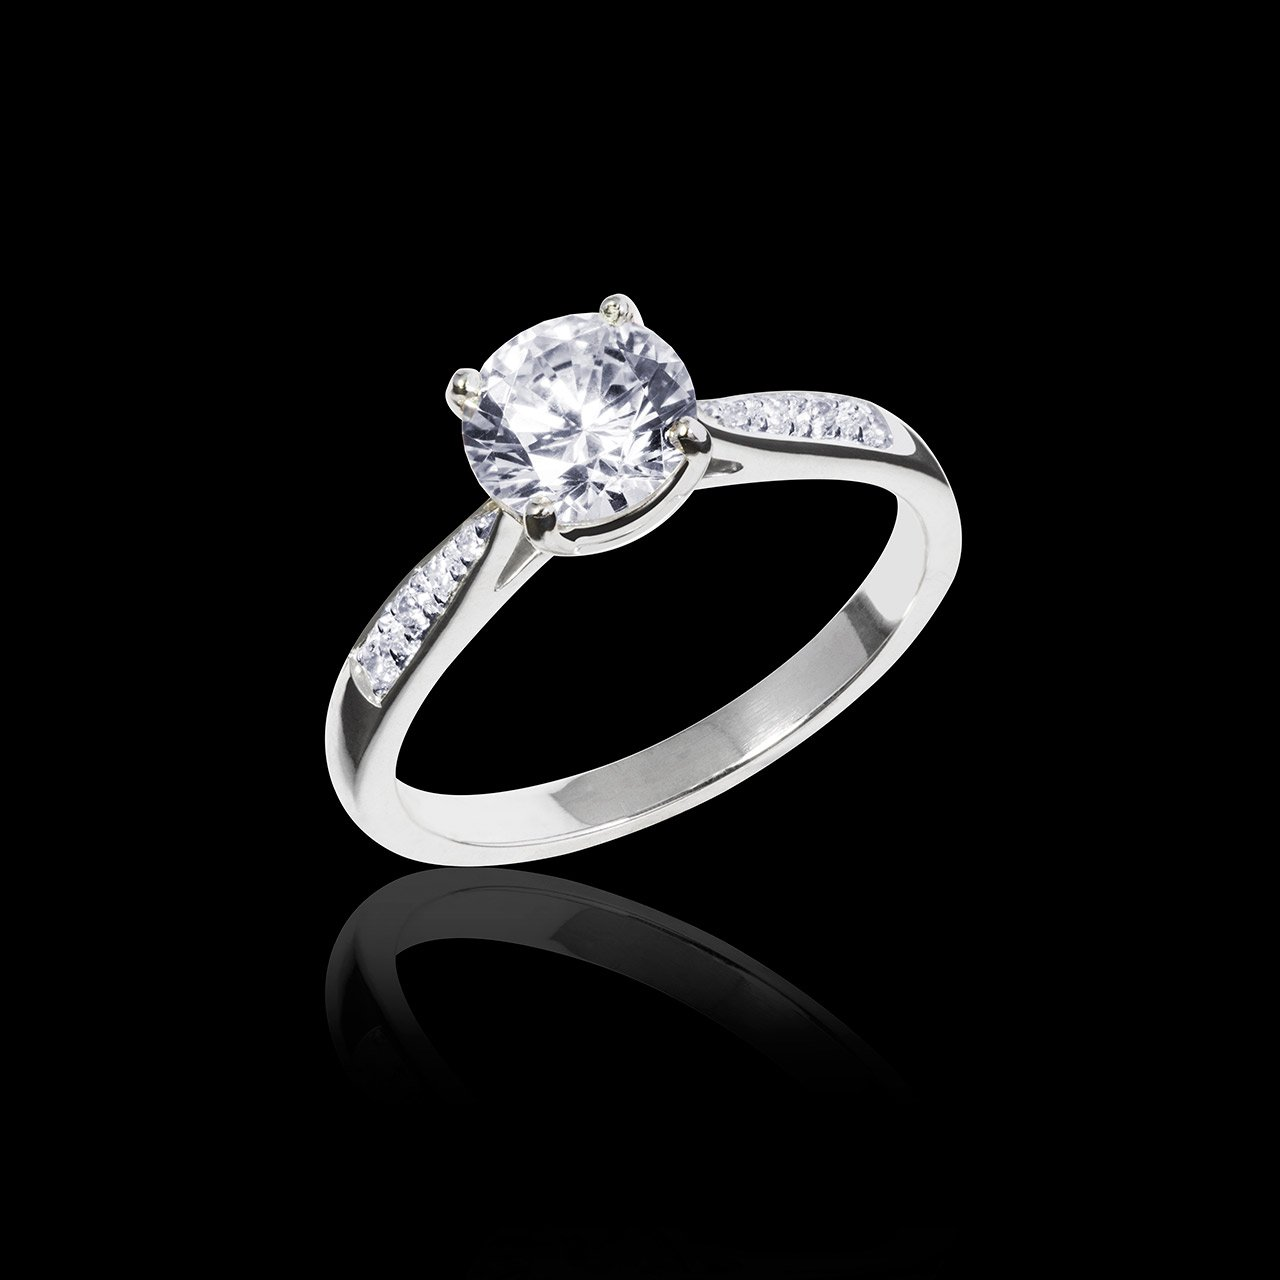 Bague solitaire diamant or blanc Angela